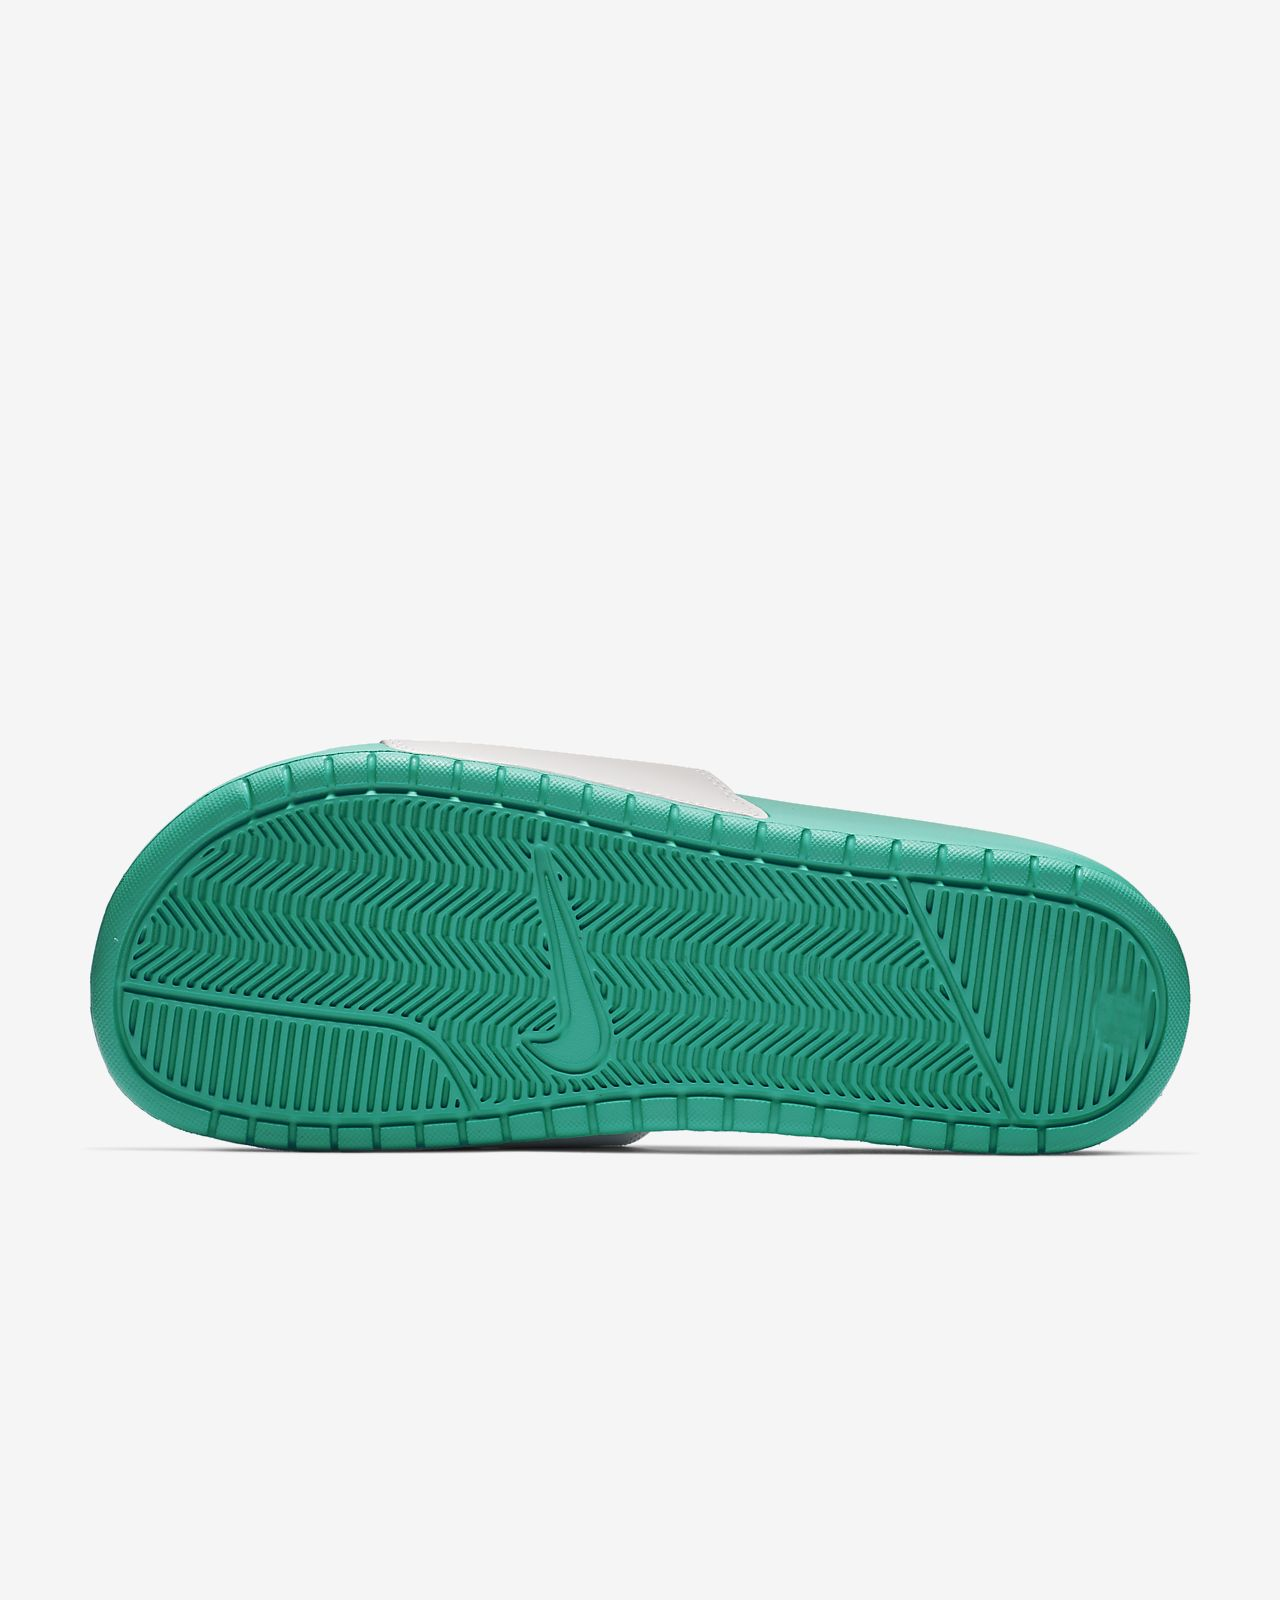 the best attitude 0d4a9 132a1 Low Resolution Nike Benassi Badeslipper Nike Benassi Badeslipper